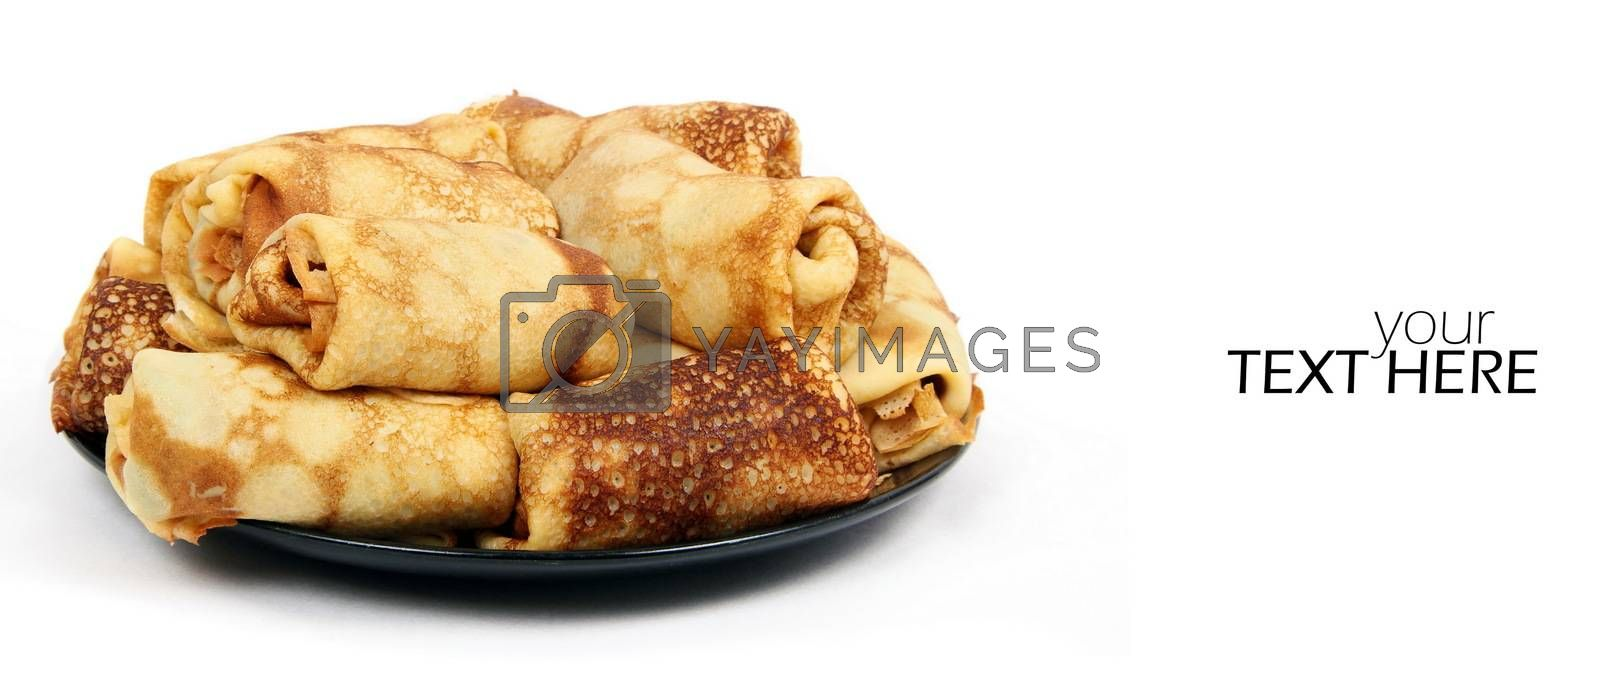 Meat pancakes wth the copy space